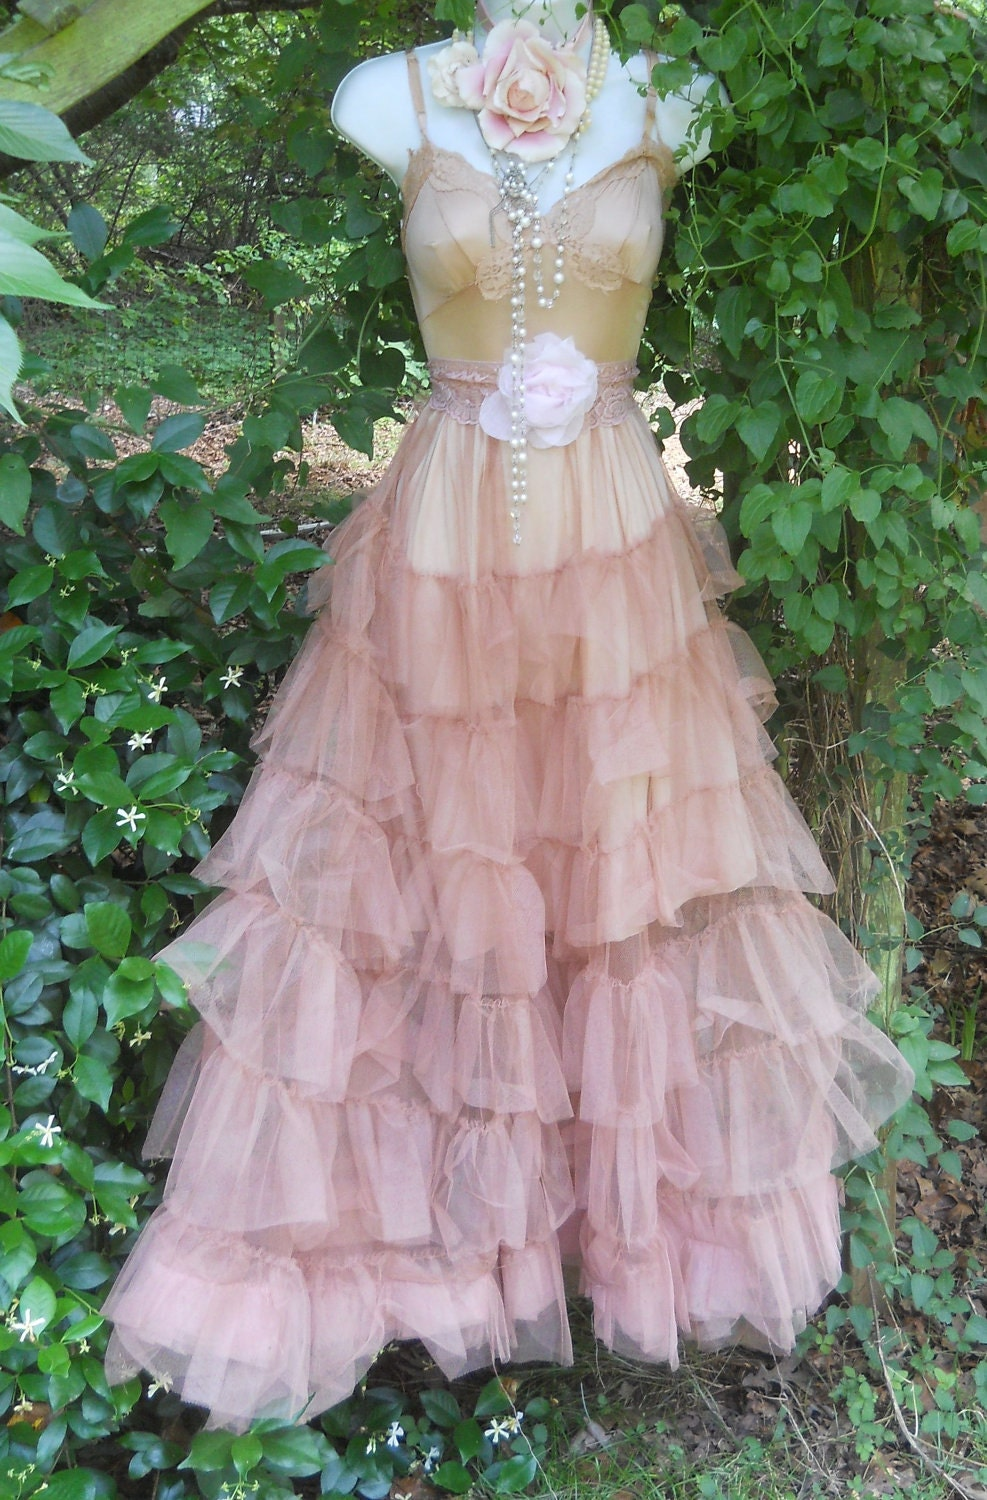 ruffle tulle dress tea stained wedding crinoline vintage